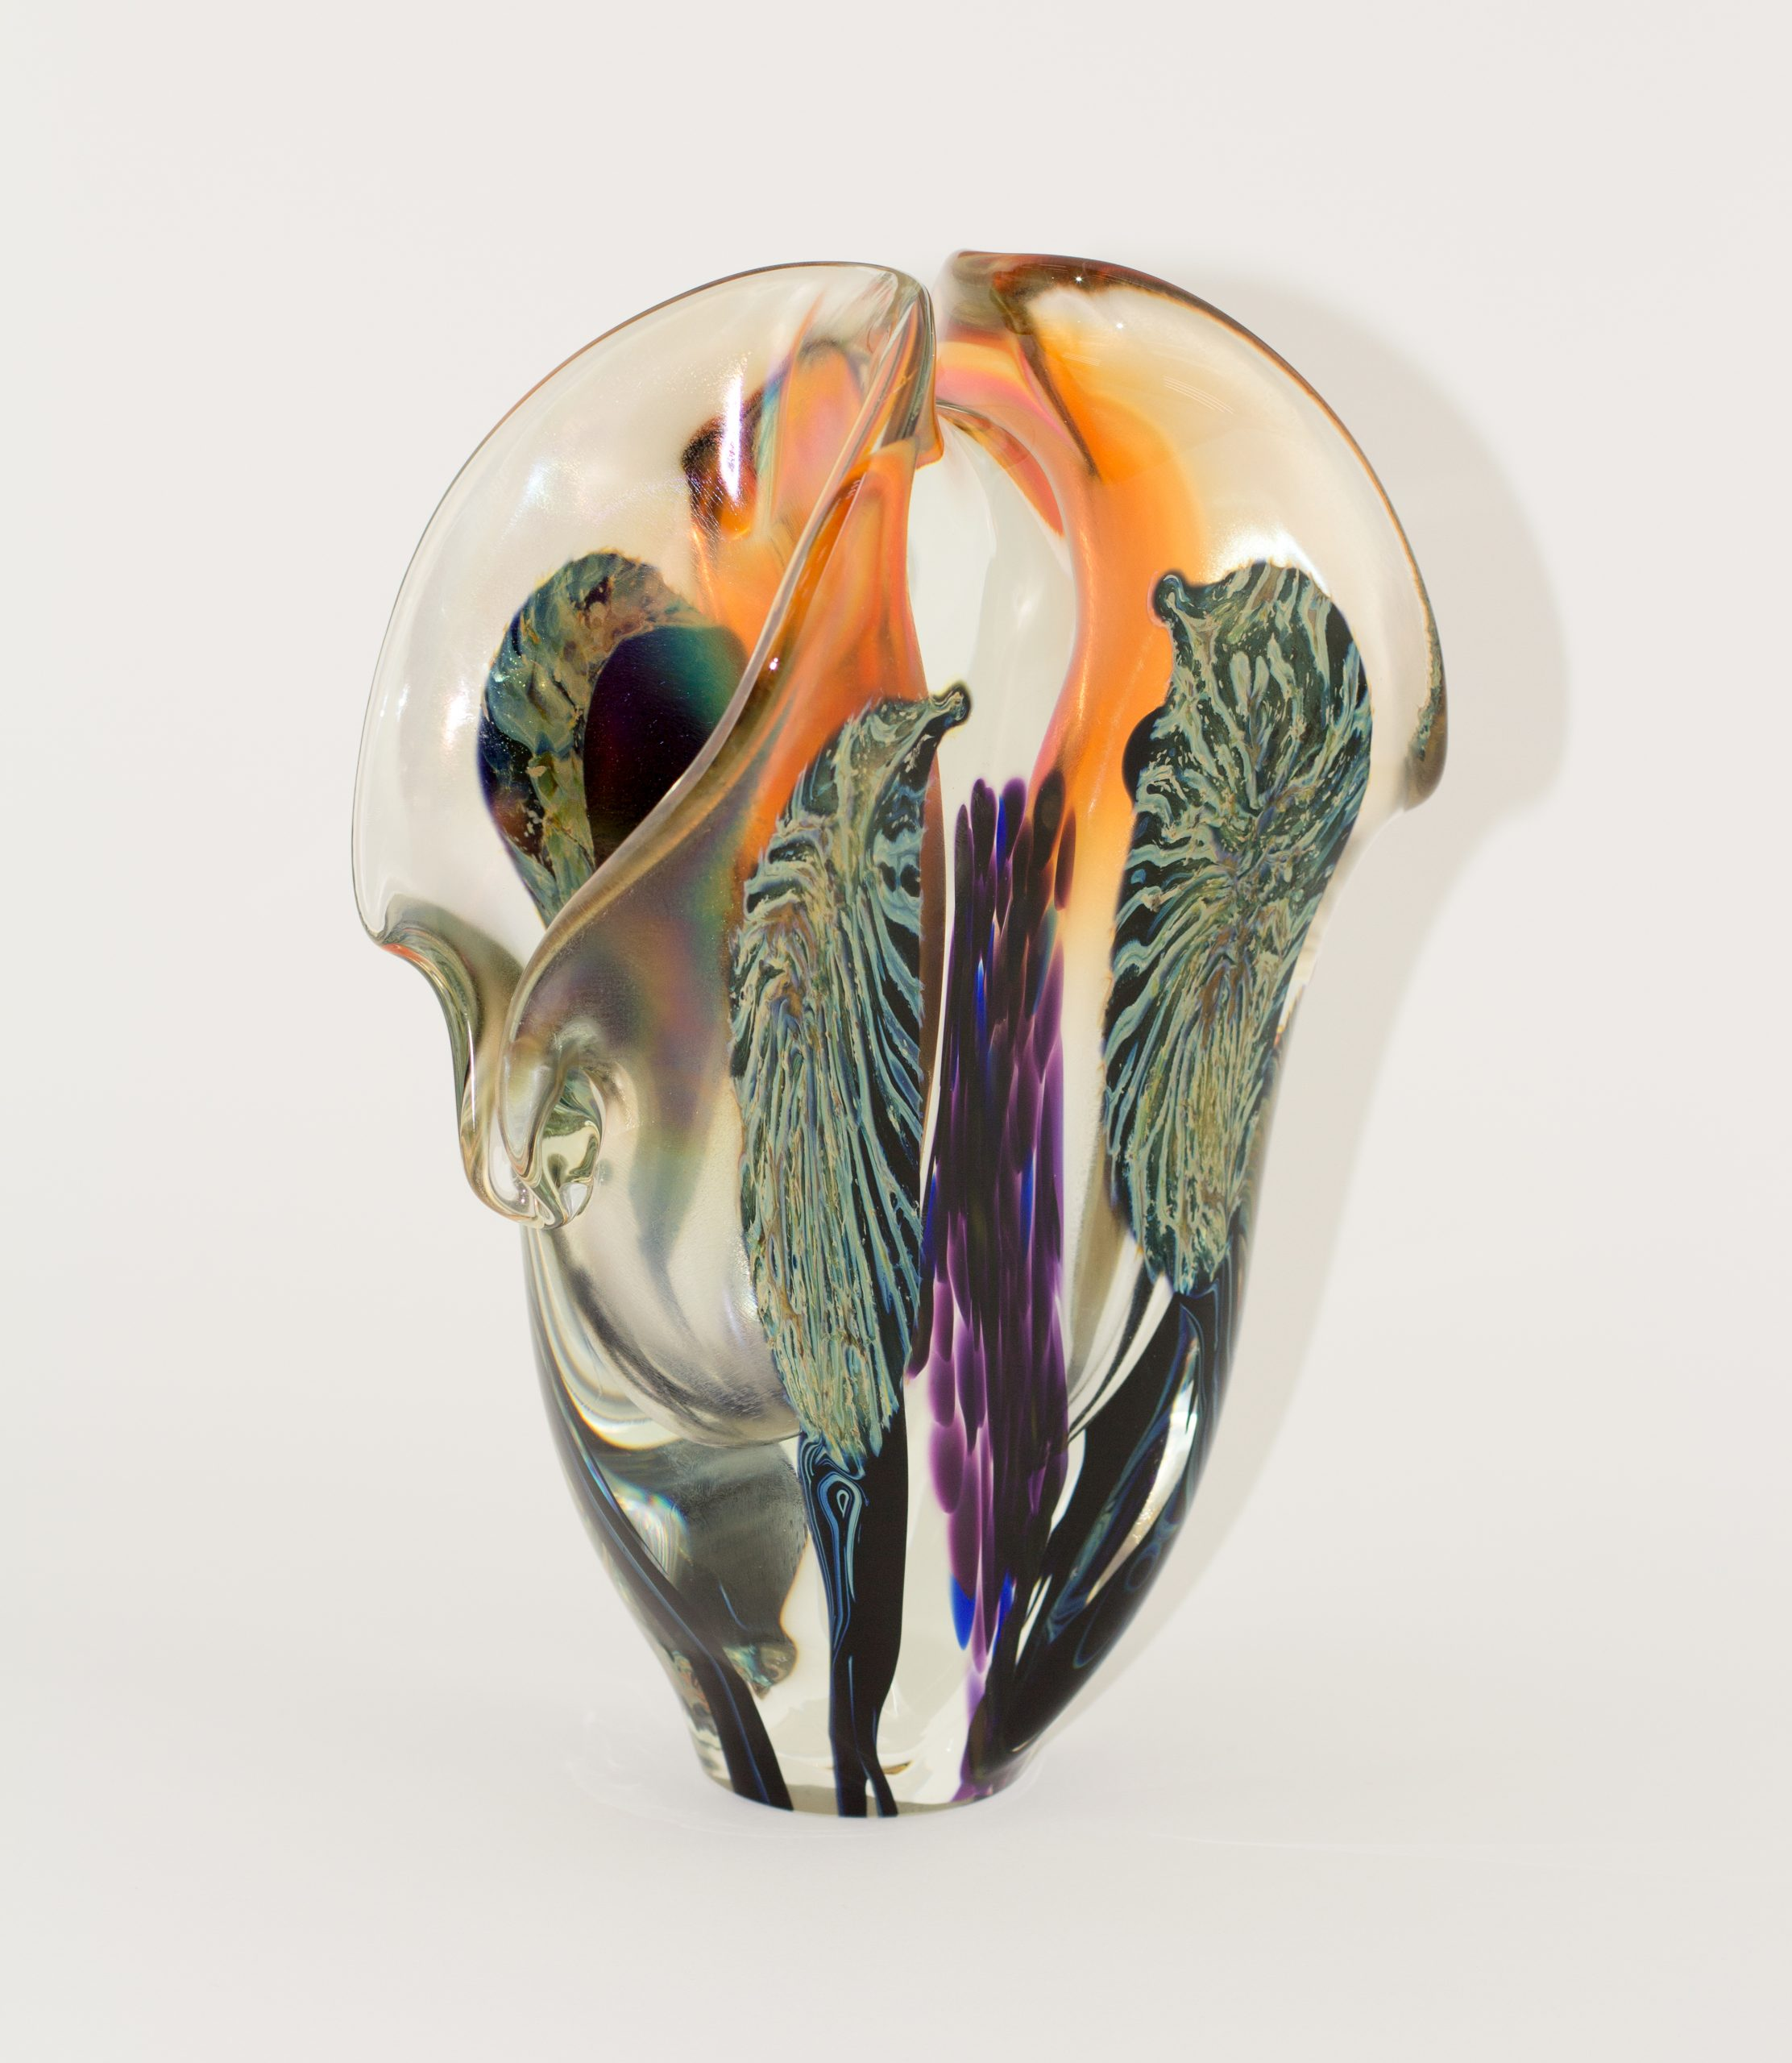 david lotton art glass